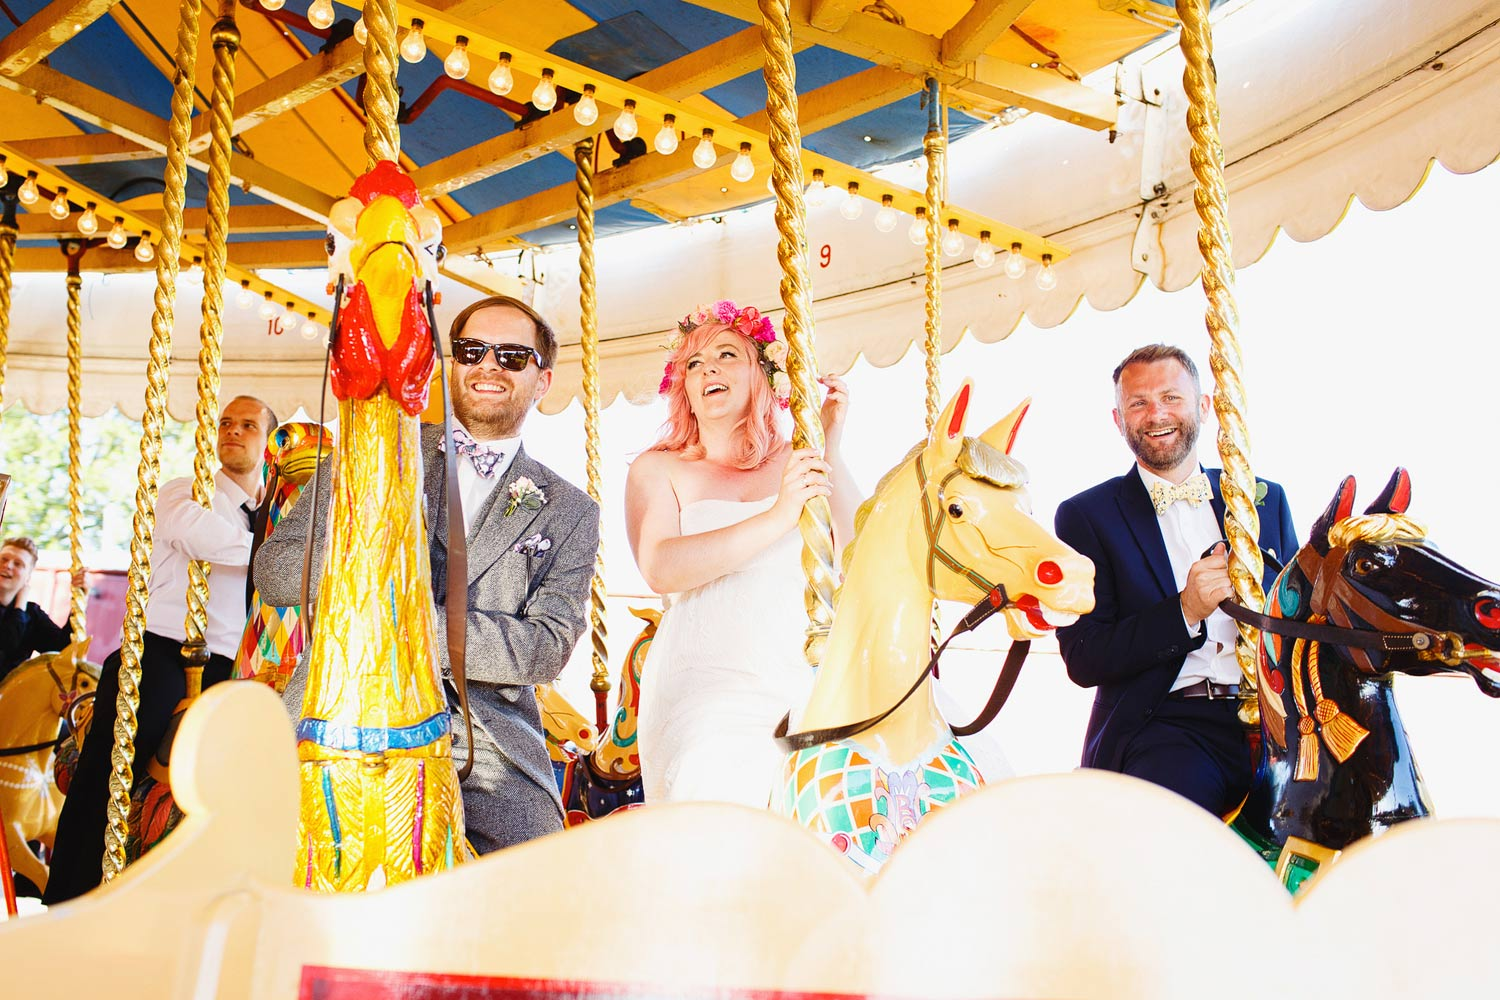 A bride and groom ride a carousel